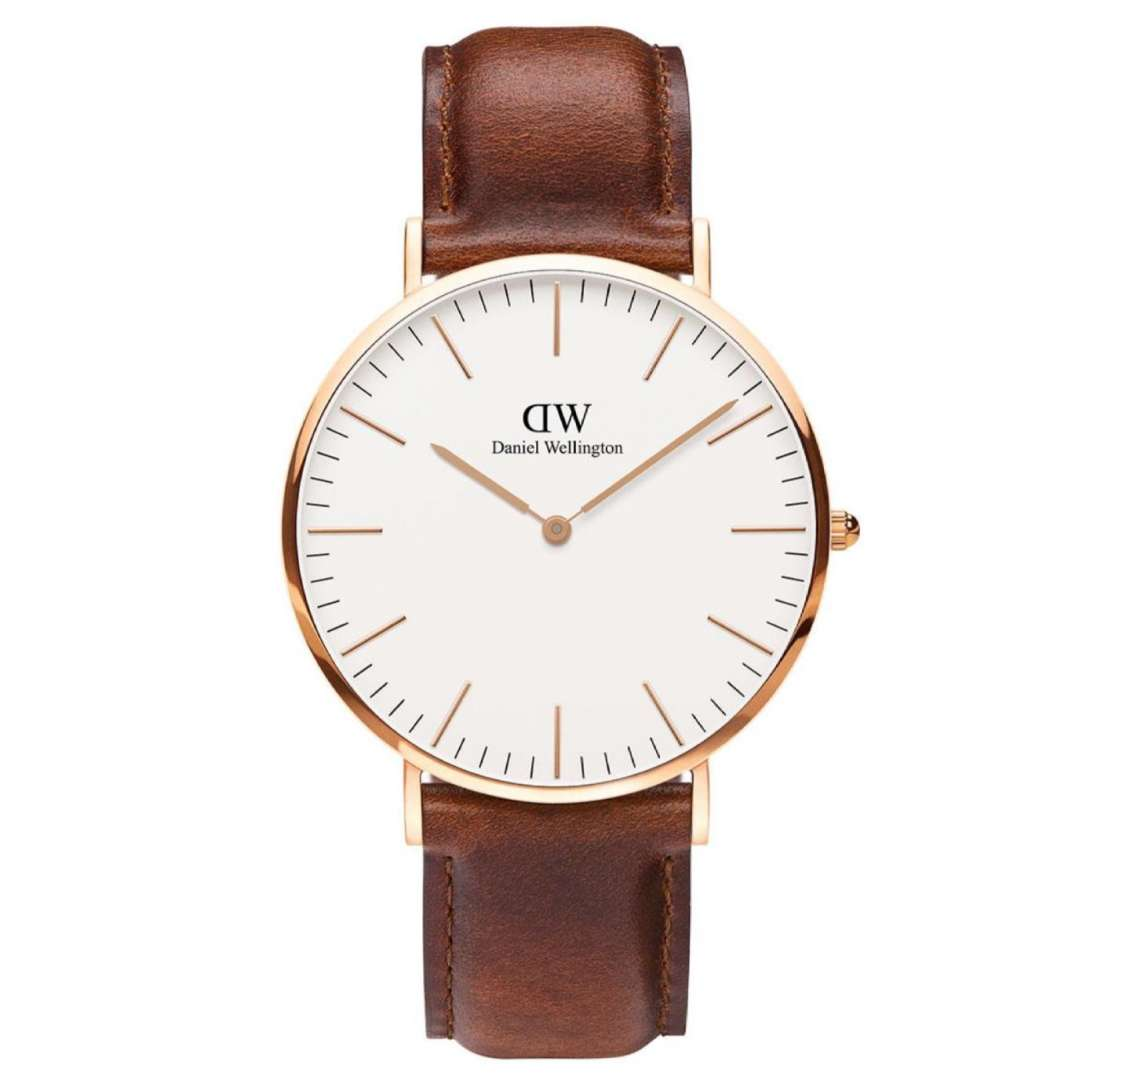 שעון יד אנלוגי daniel wellington 0106DW דניאל וולינגטון